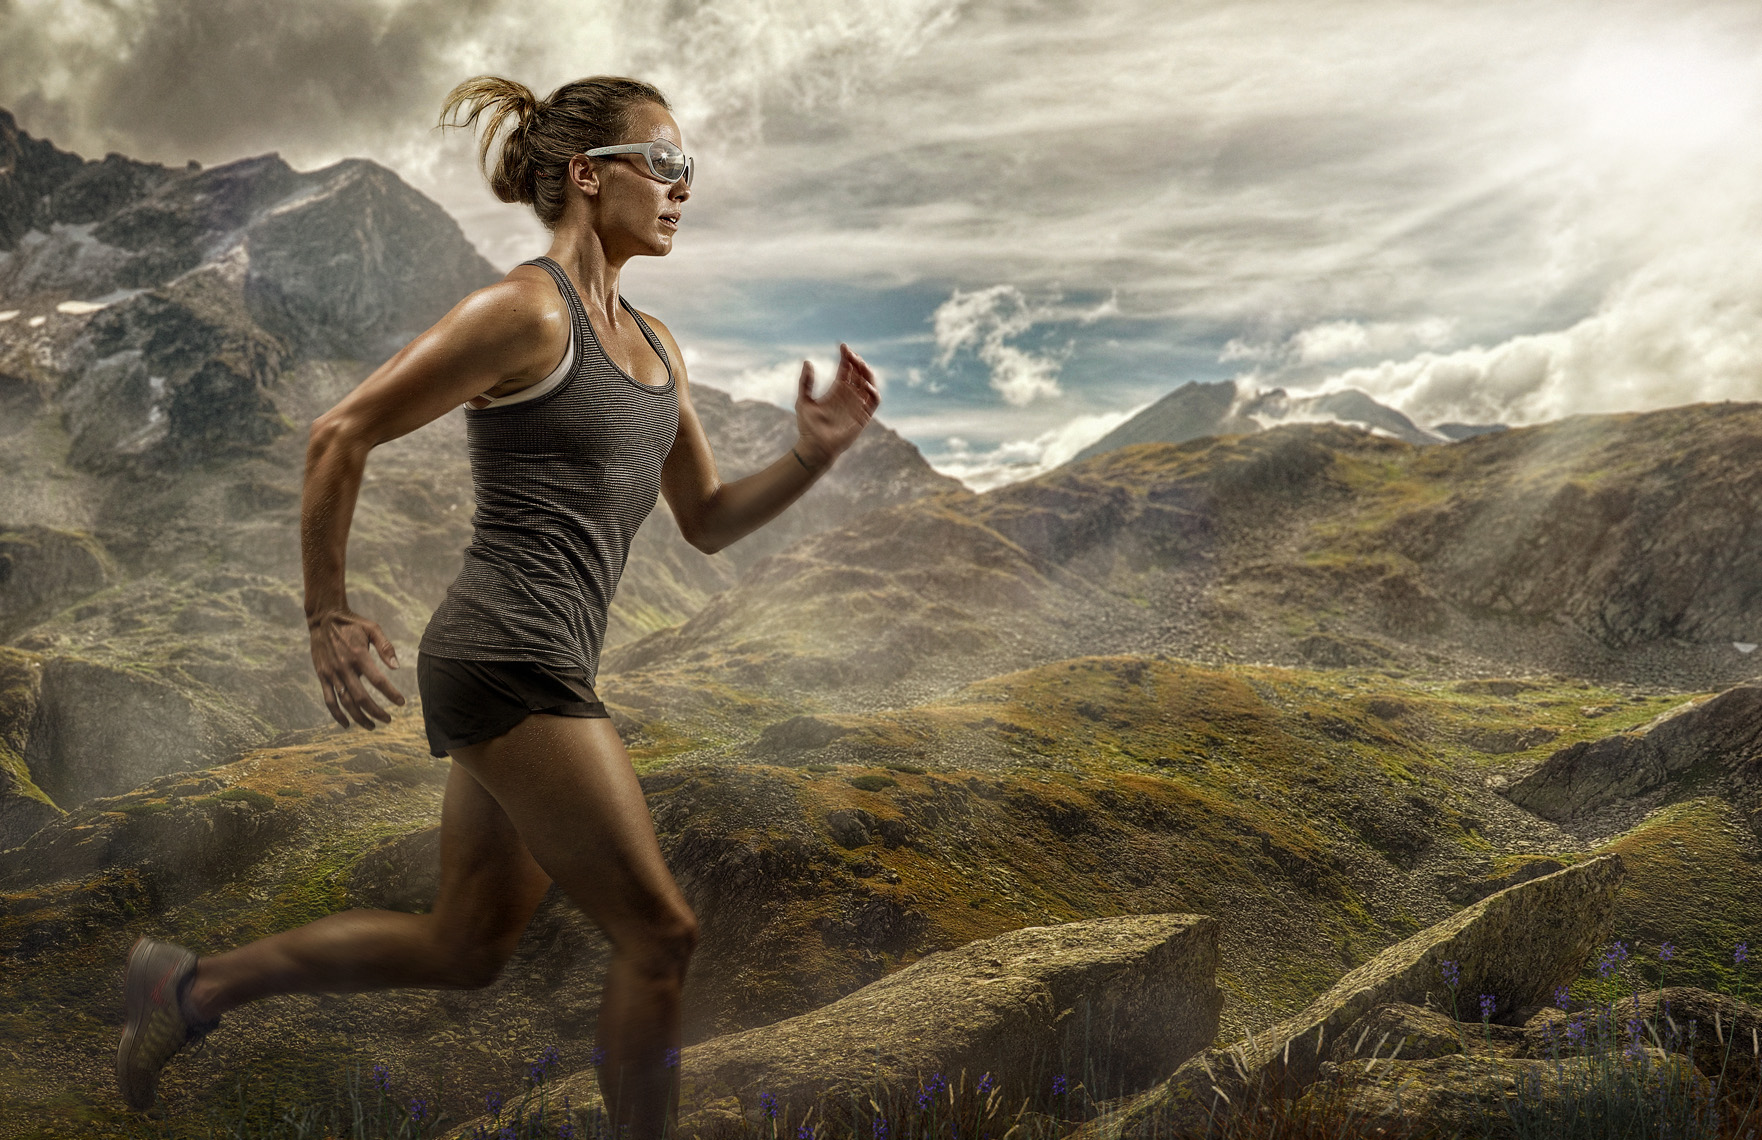 female athlete runner wearing protective sunglasses photography by Vancouver advertising photographer Waldy Martens